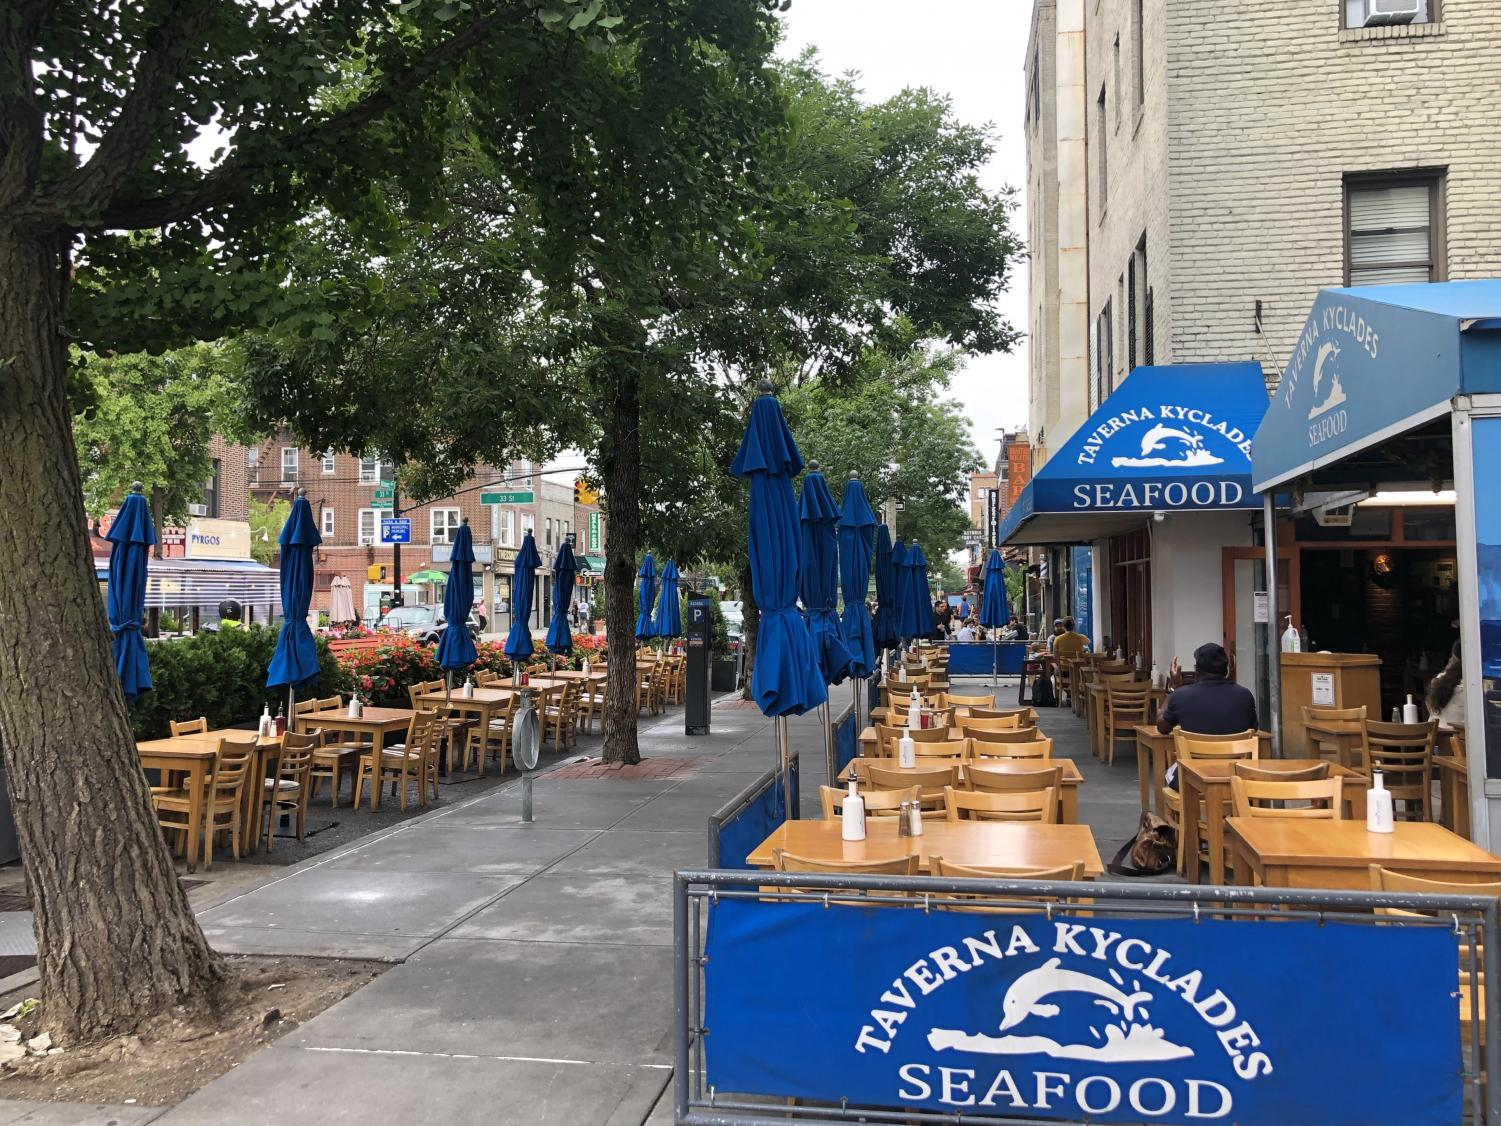 Taverna Kyclades Seafood and its blue signs on the street